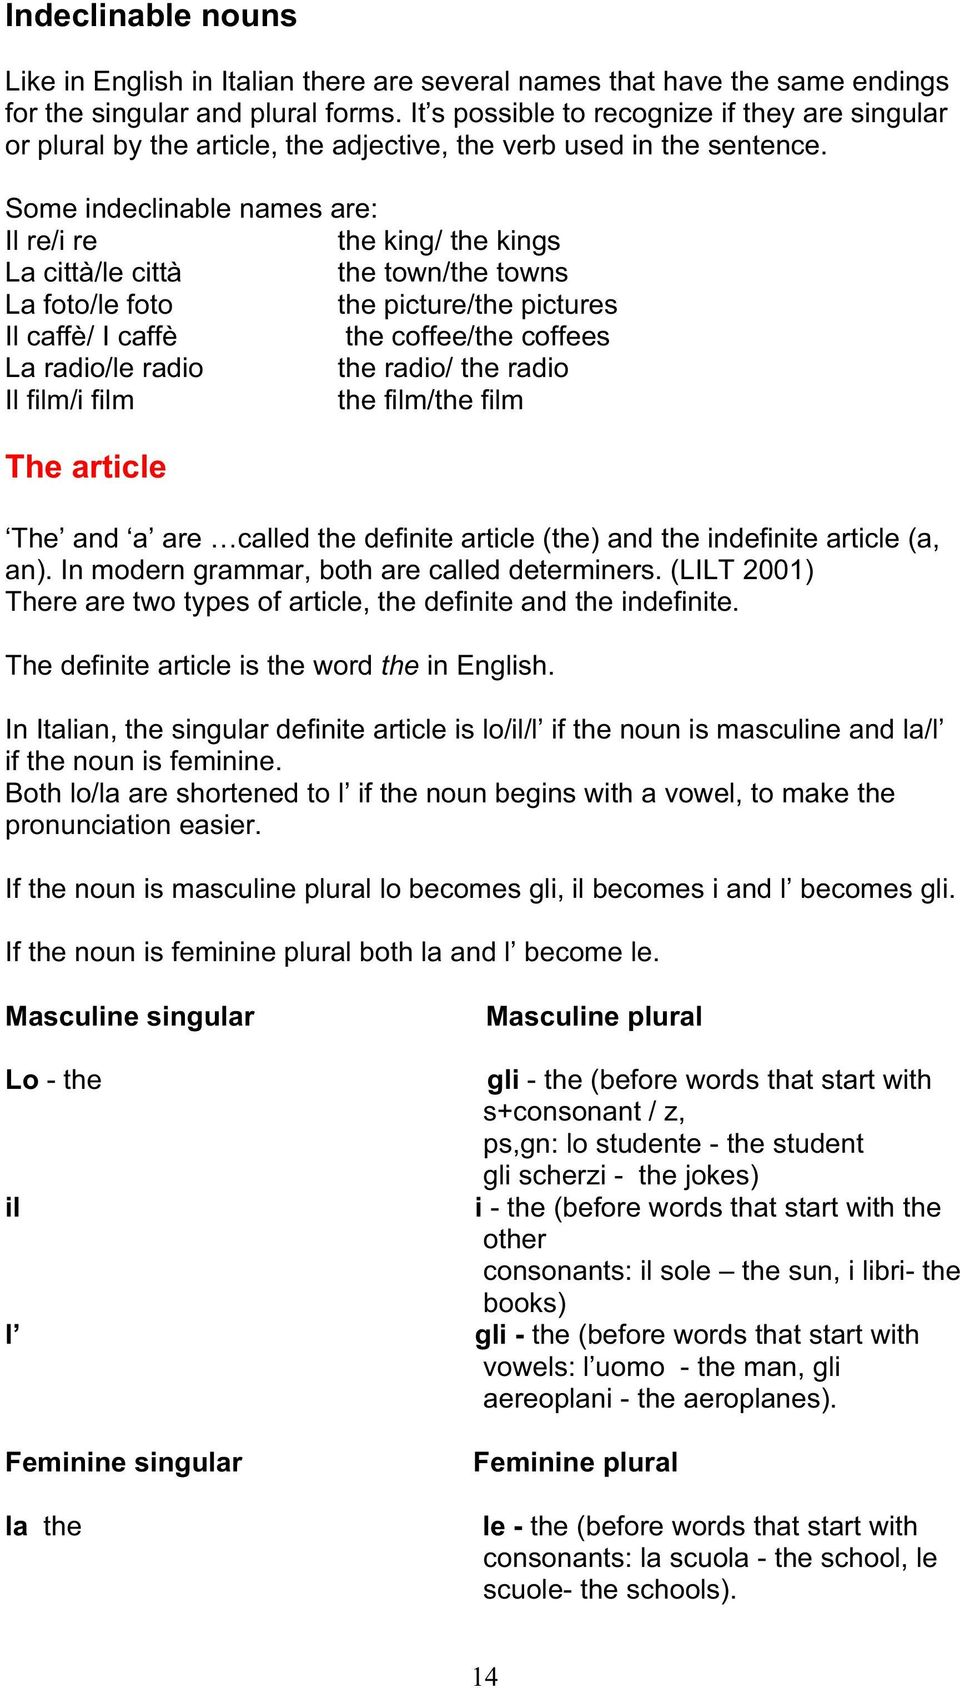 Mfle Italian Reference Grammar Pdf Free Download